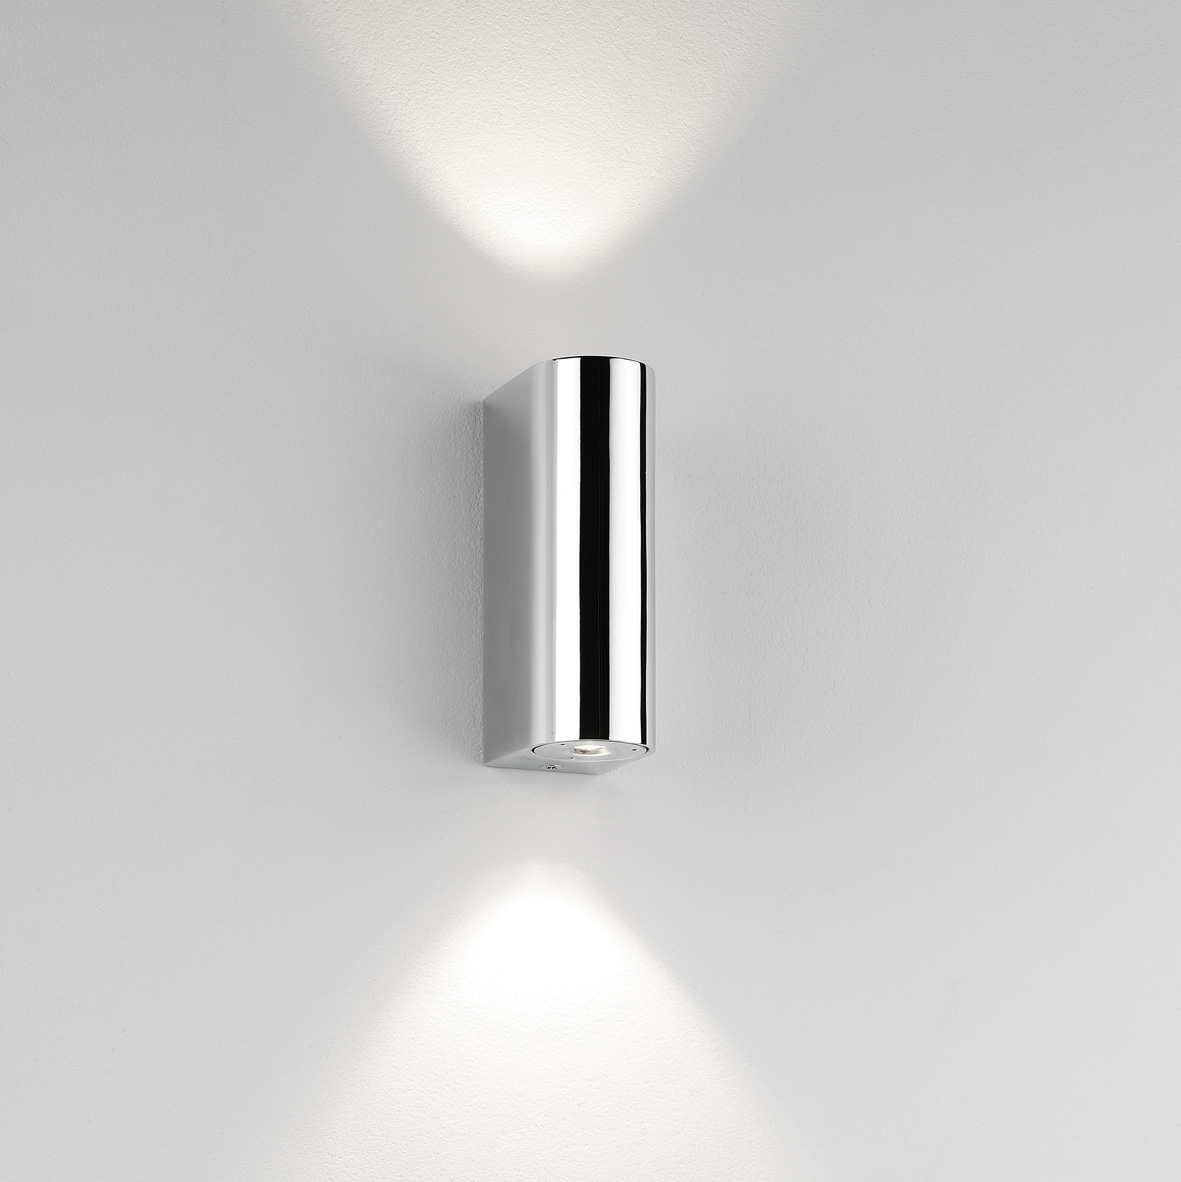 ASTRO Alba 0828 bathroom LED wall light 2 X 1W IP44 3000K warmwhite Luxeon Thumbnail 1